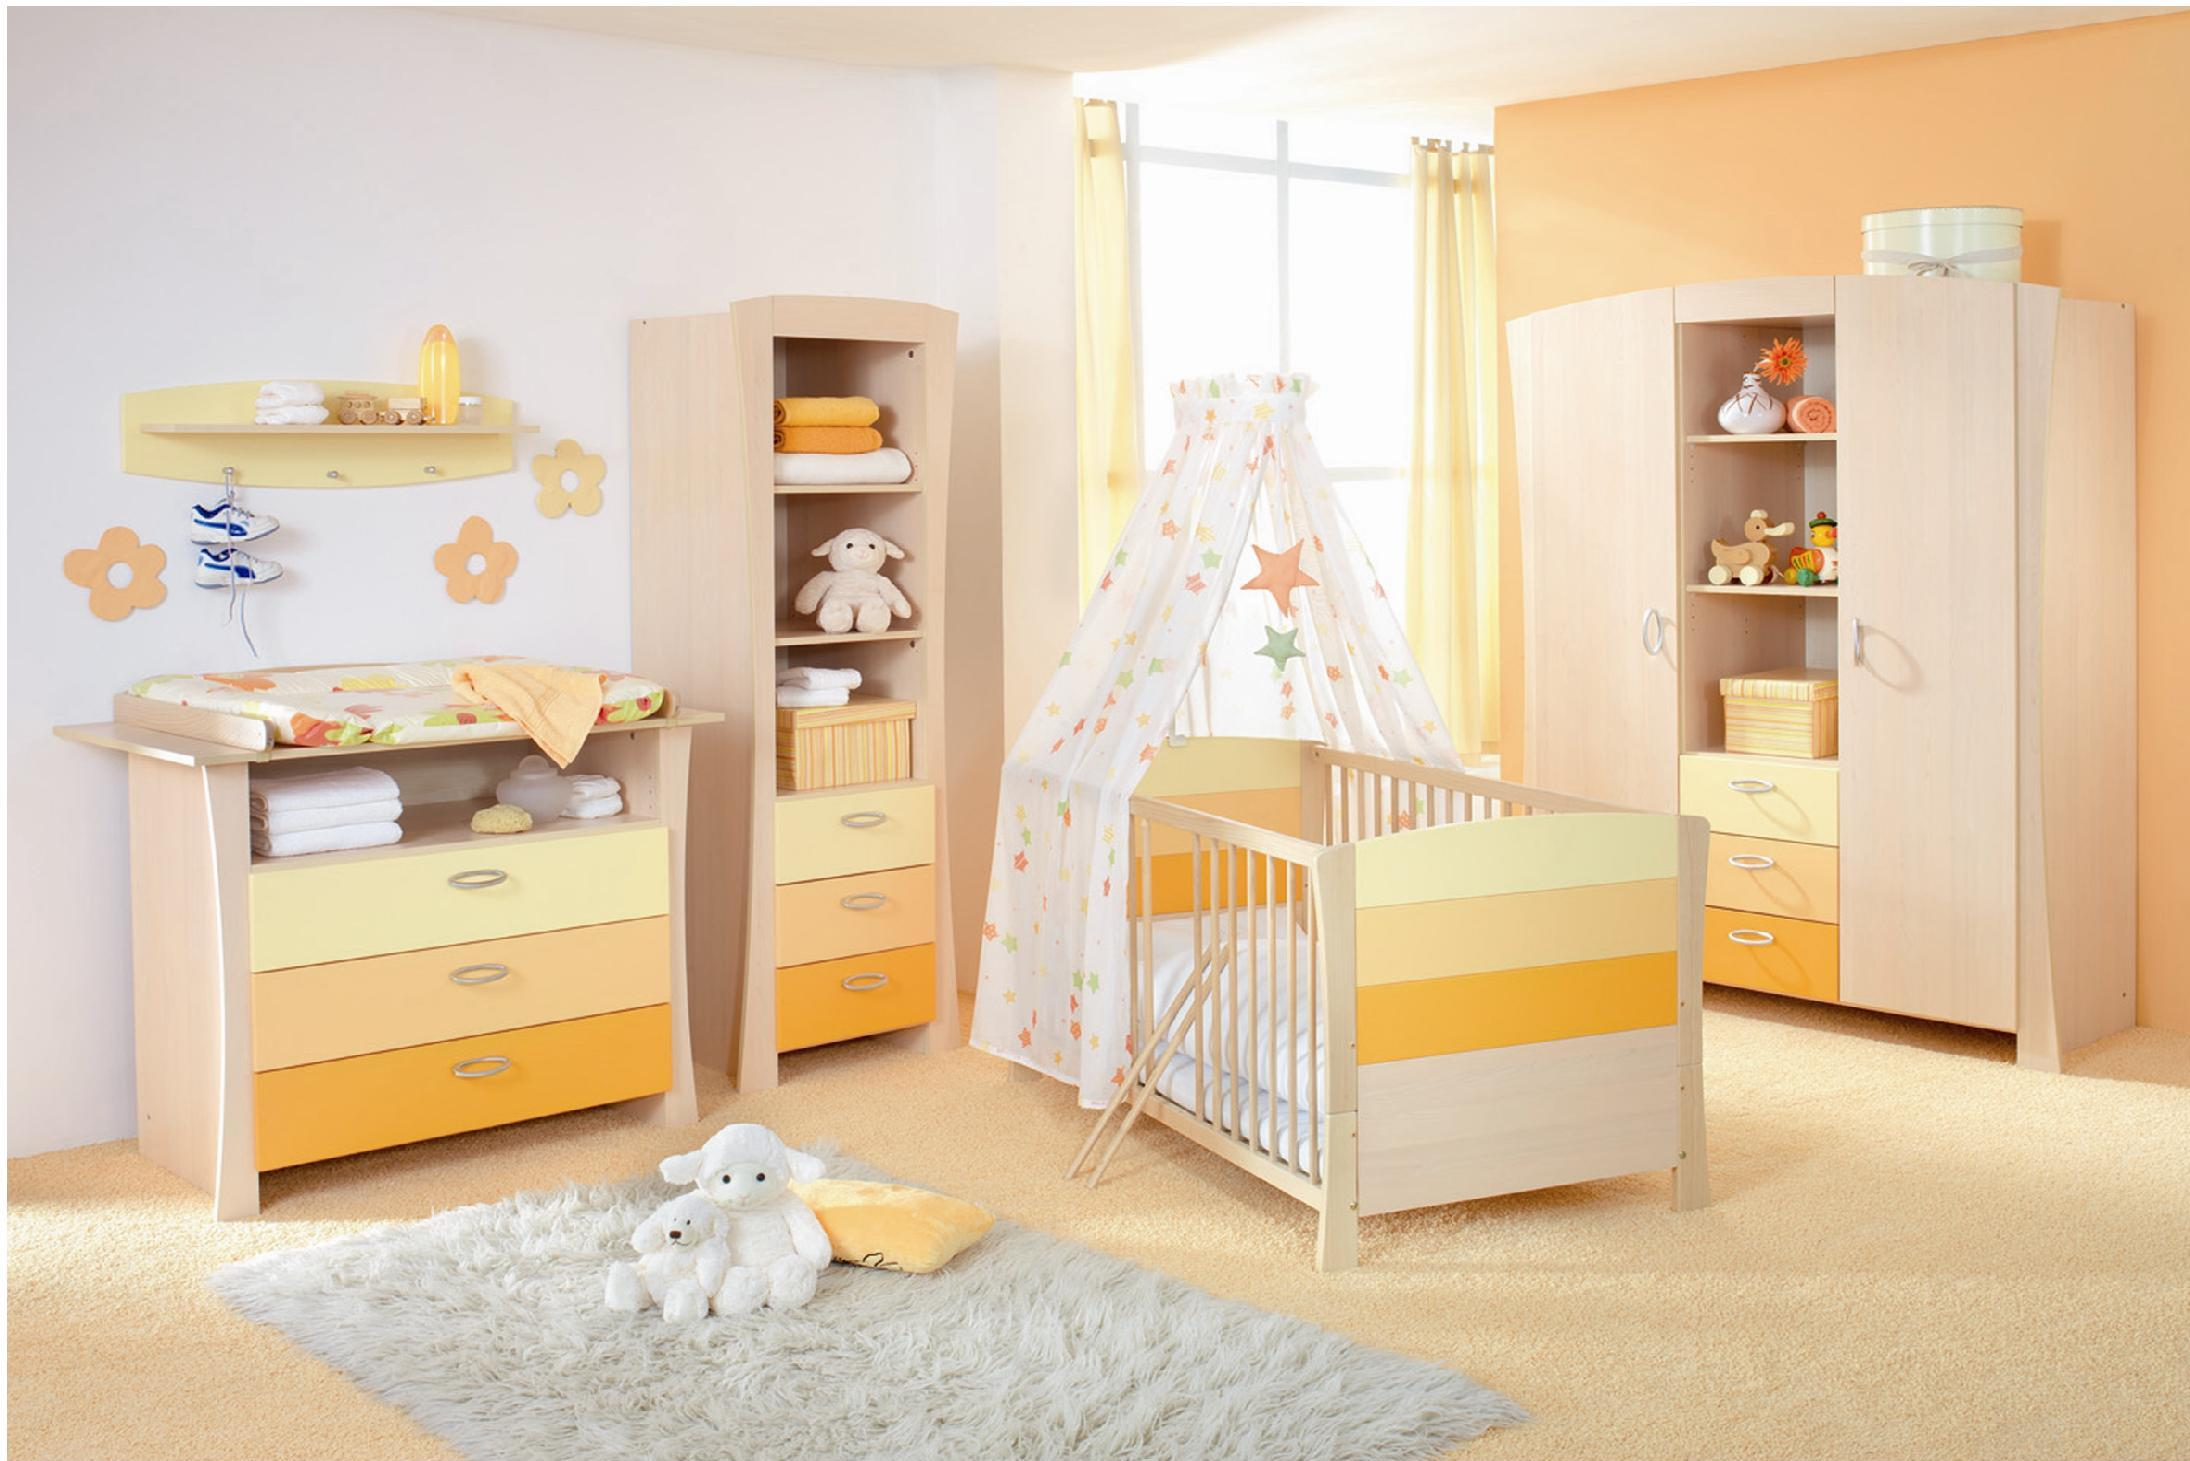 1 nursery girls bedroom 3 interior design ideas for 3 room design ideas